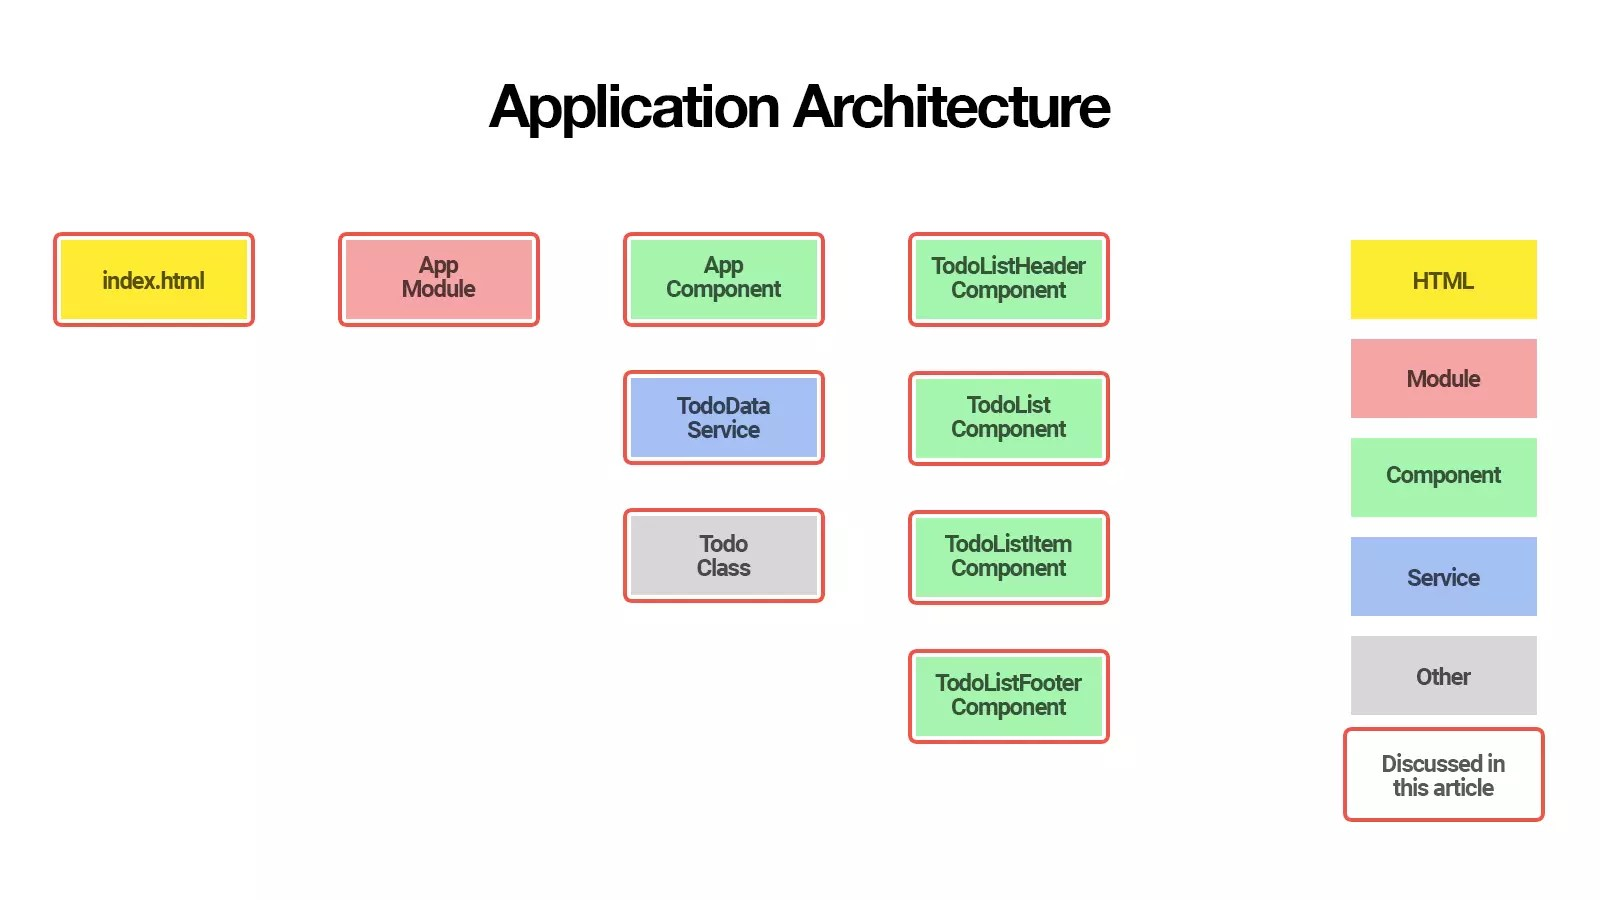 REST API back end: Application Architecture